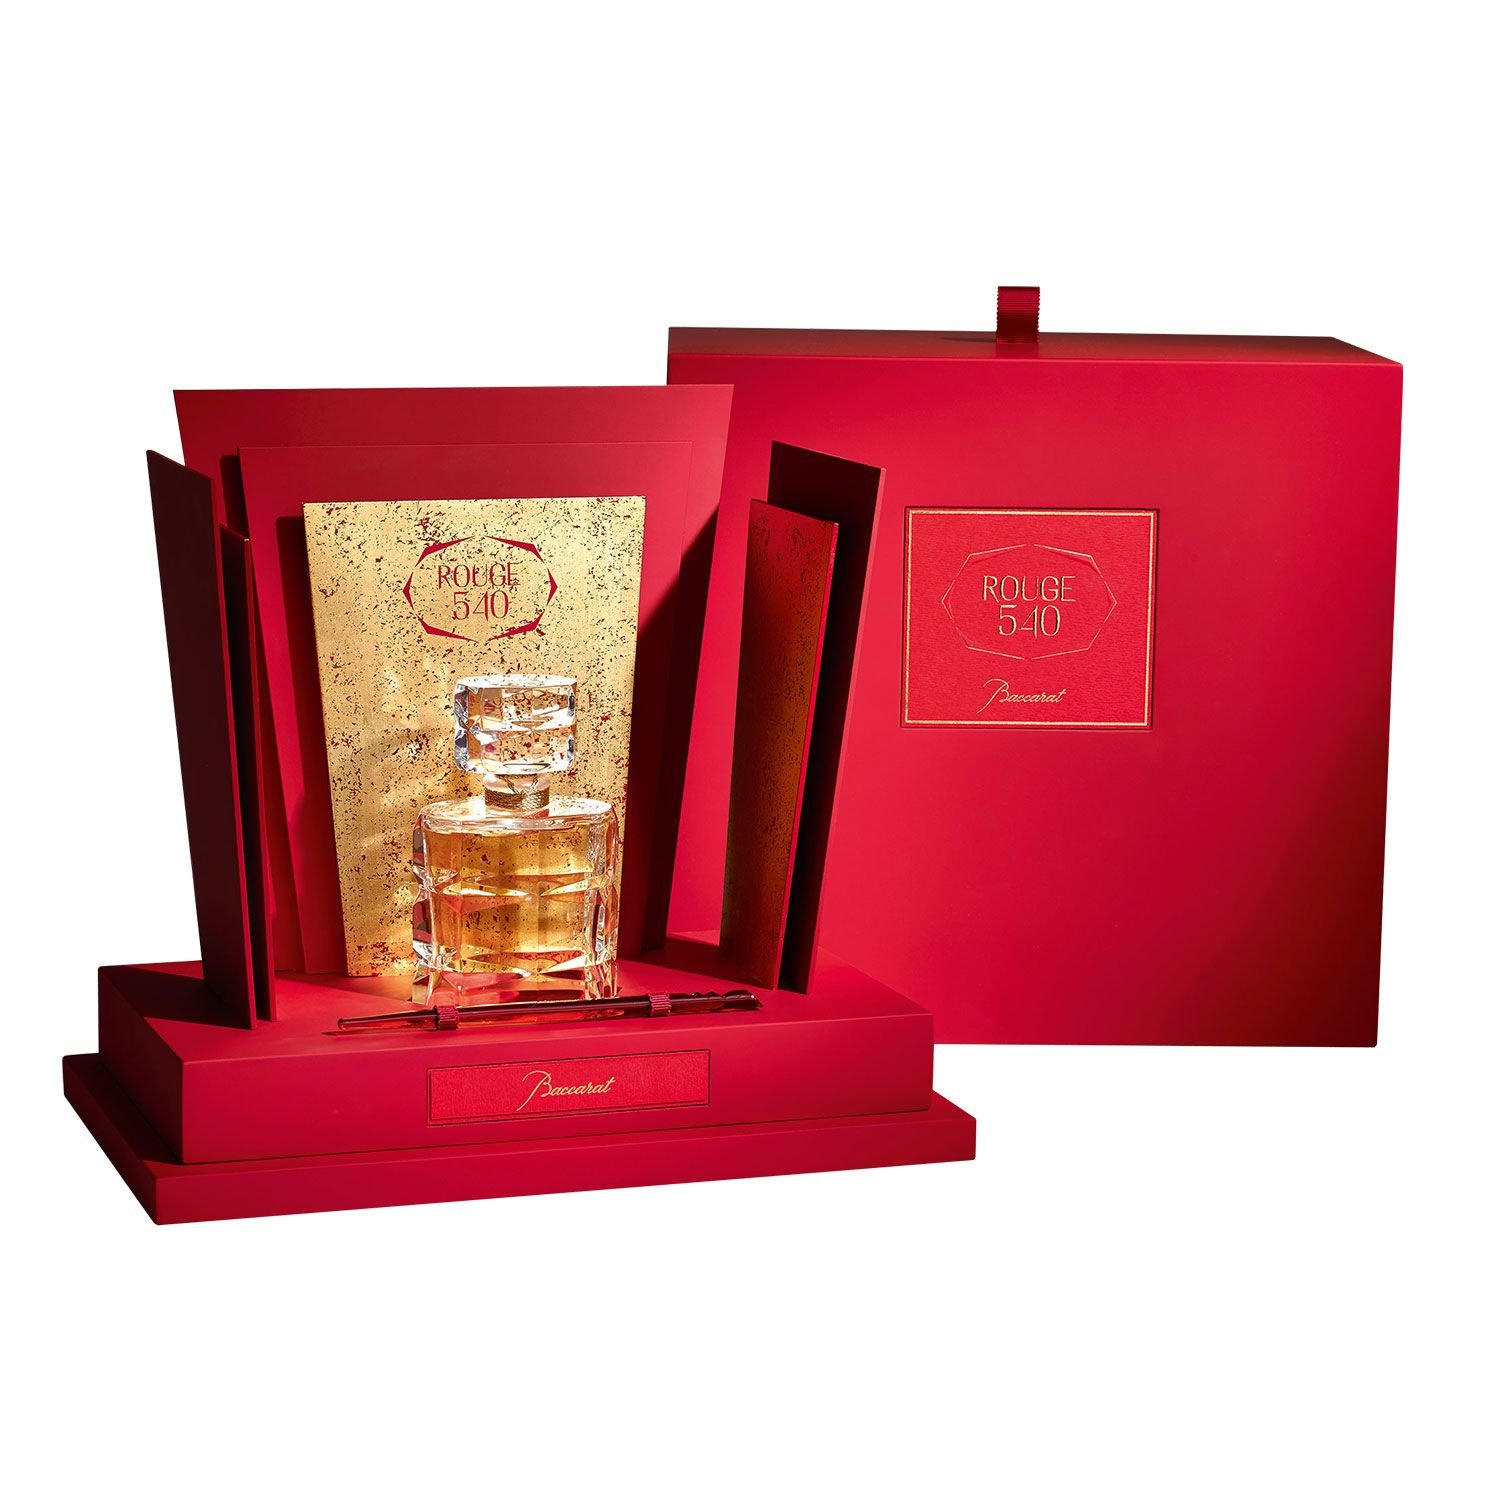 Baccarat-Rouge-540-packaging-TheLuxuryTrends